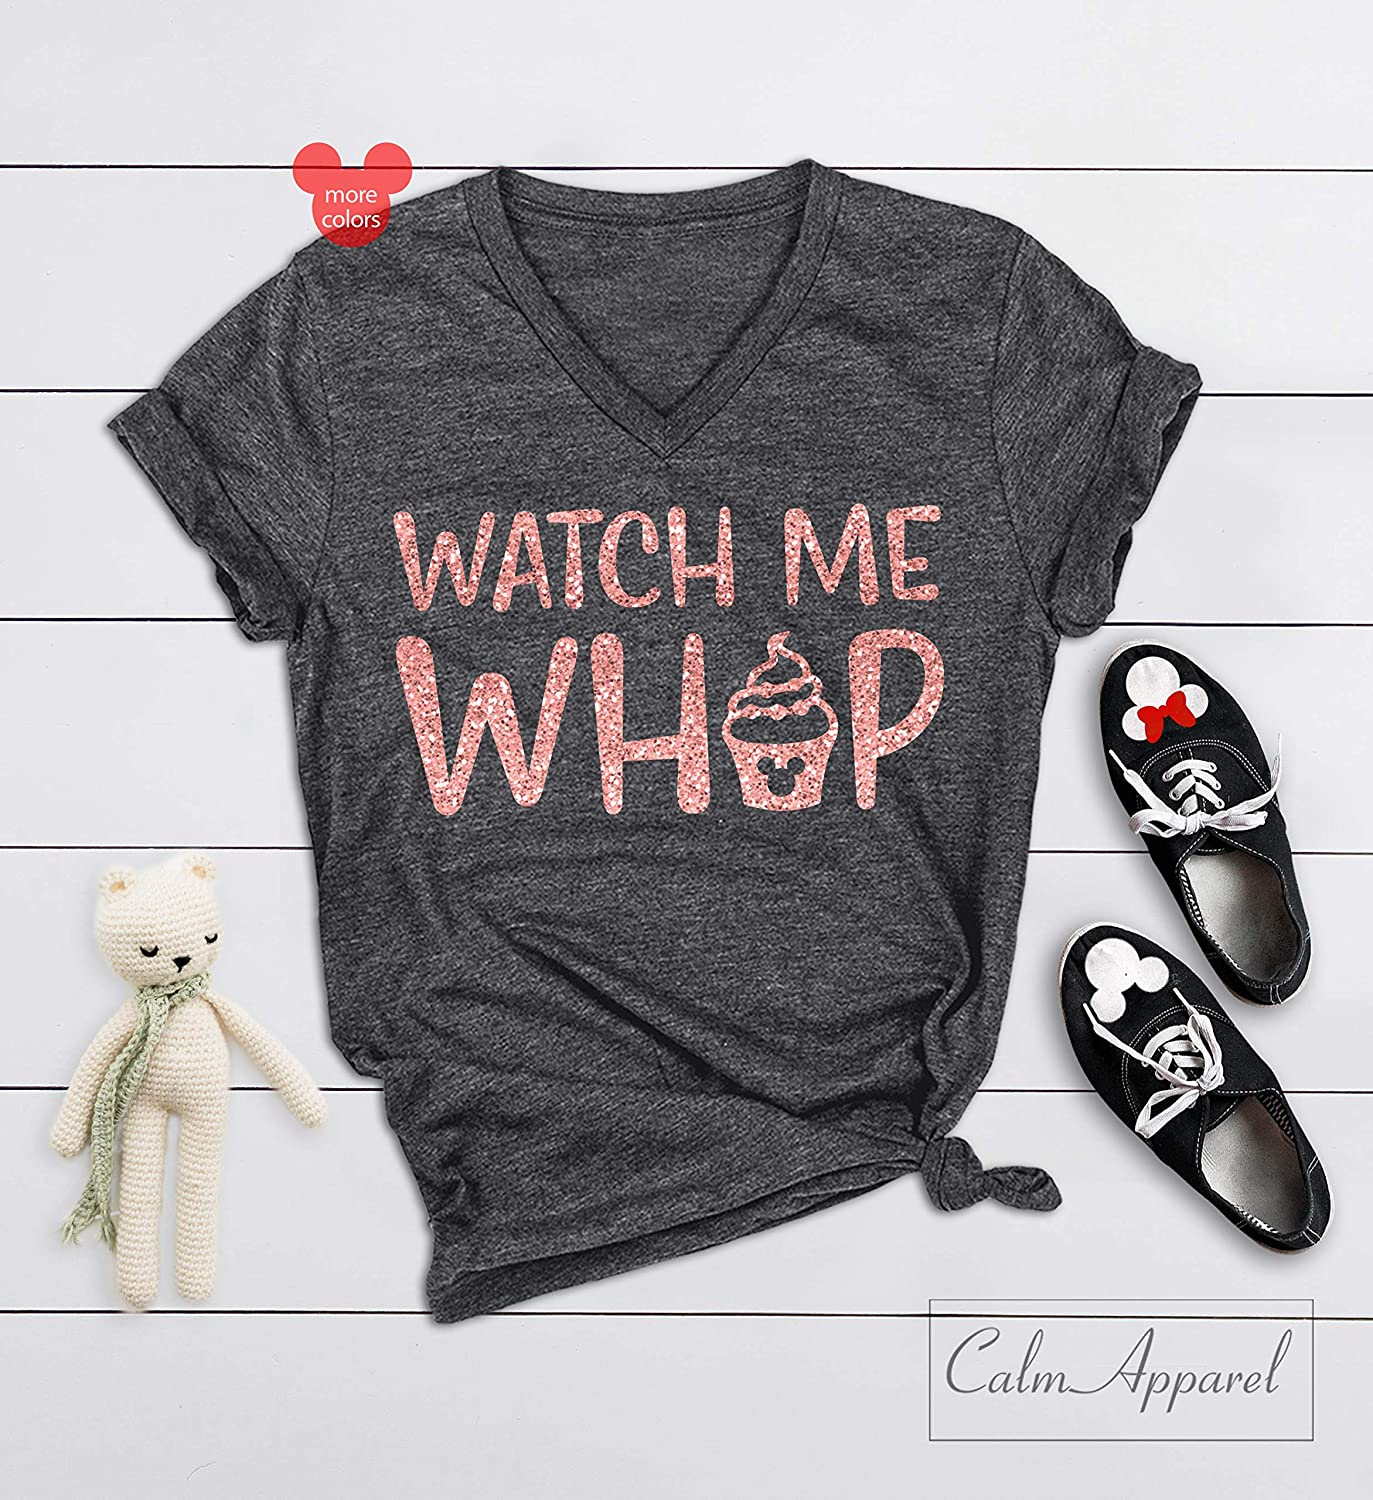 dd6d1846 Amazon.com: Watch Me Whip Shirt, World Trip Shirts, Ladies Fun T-Shirts,  Matching Vacation Tees, Summer Workout Muscle Tanks: Handmade